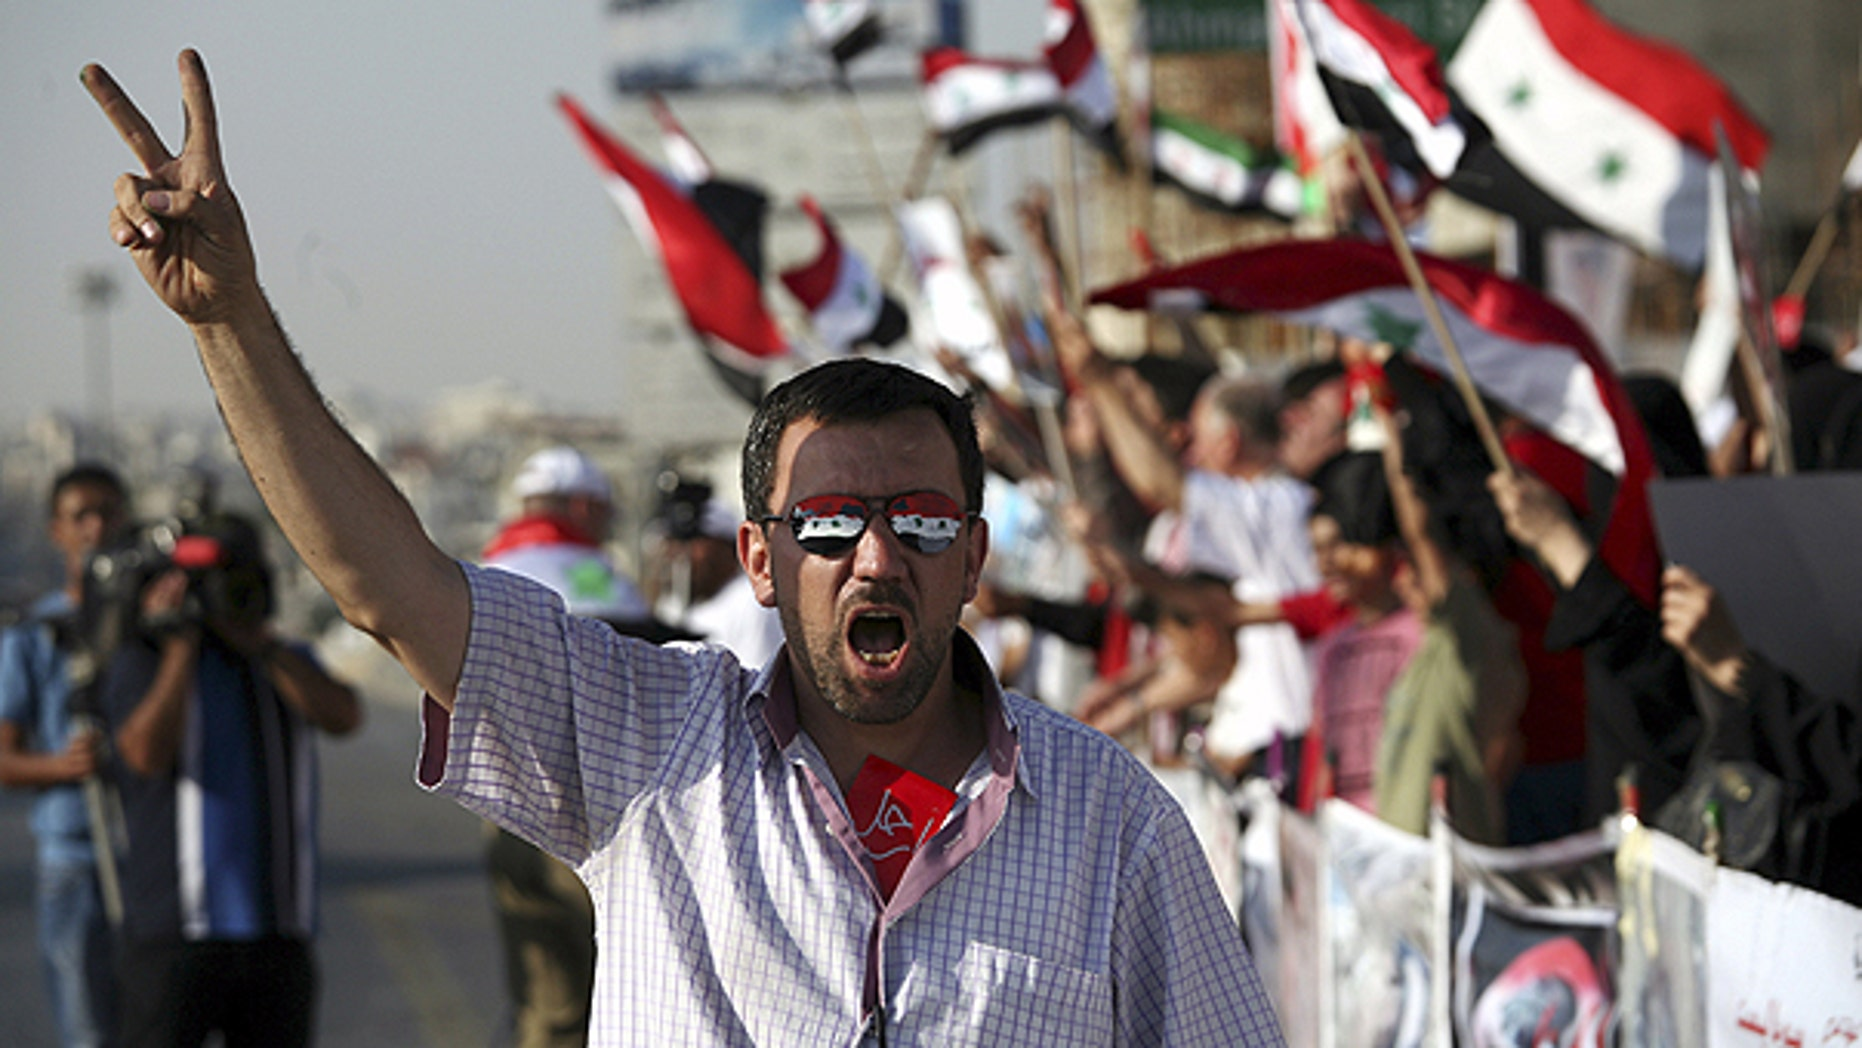 July 7: A man wearing sunglasses painted with the colors of the Syrian national flag gives a v-sign during a rally in support of the Syrian opposition in Amman, Jordan.